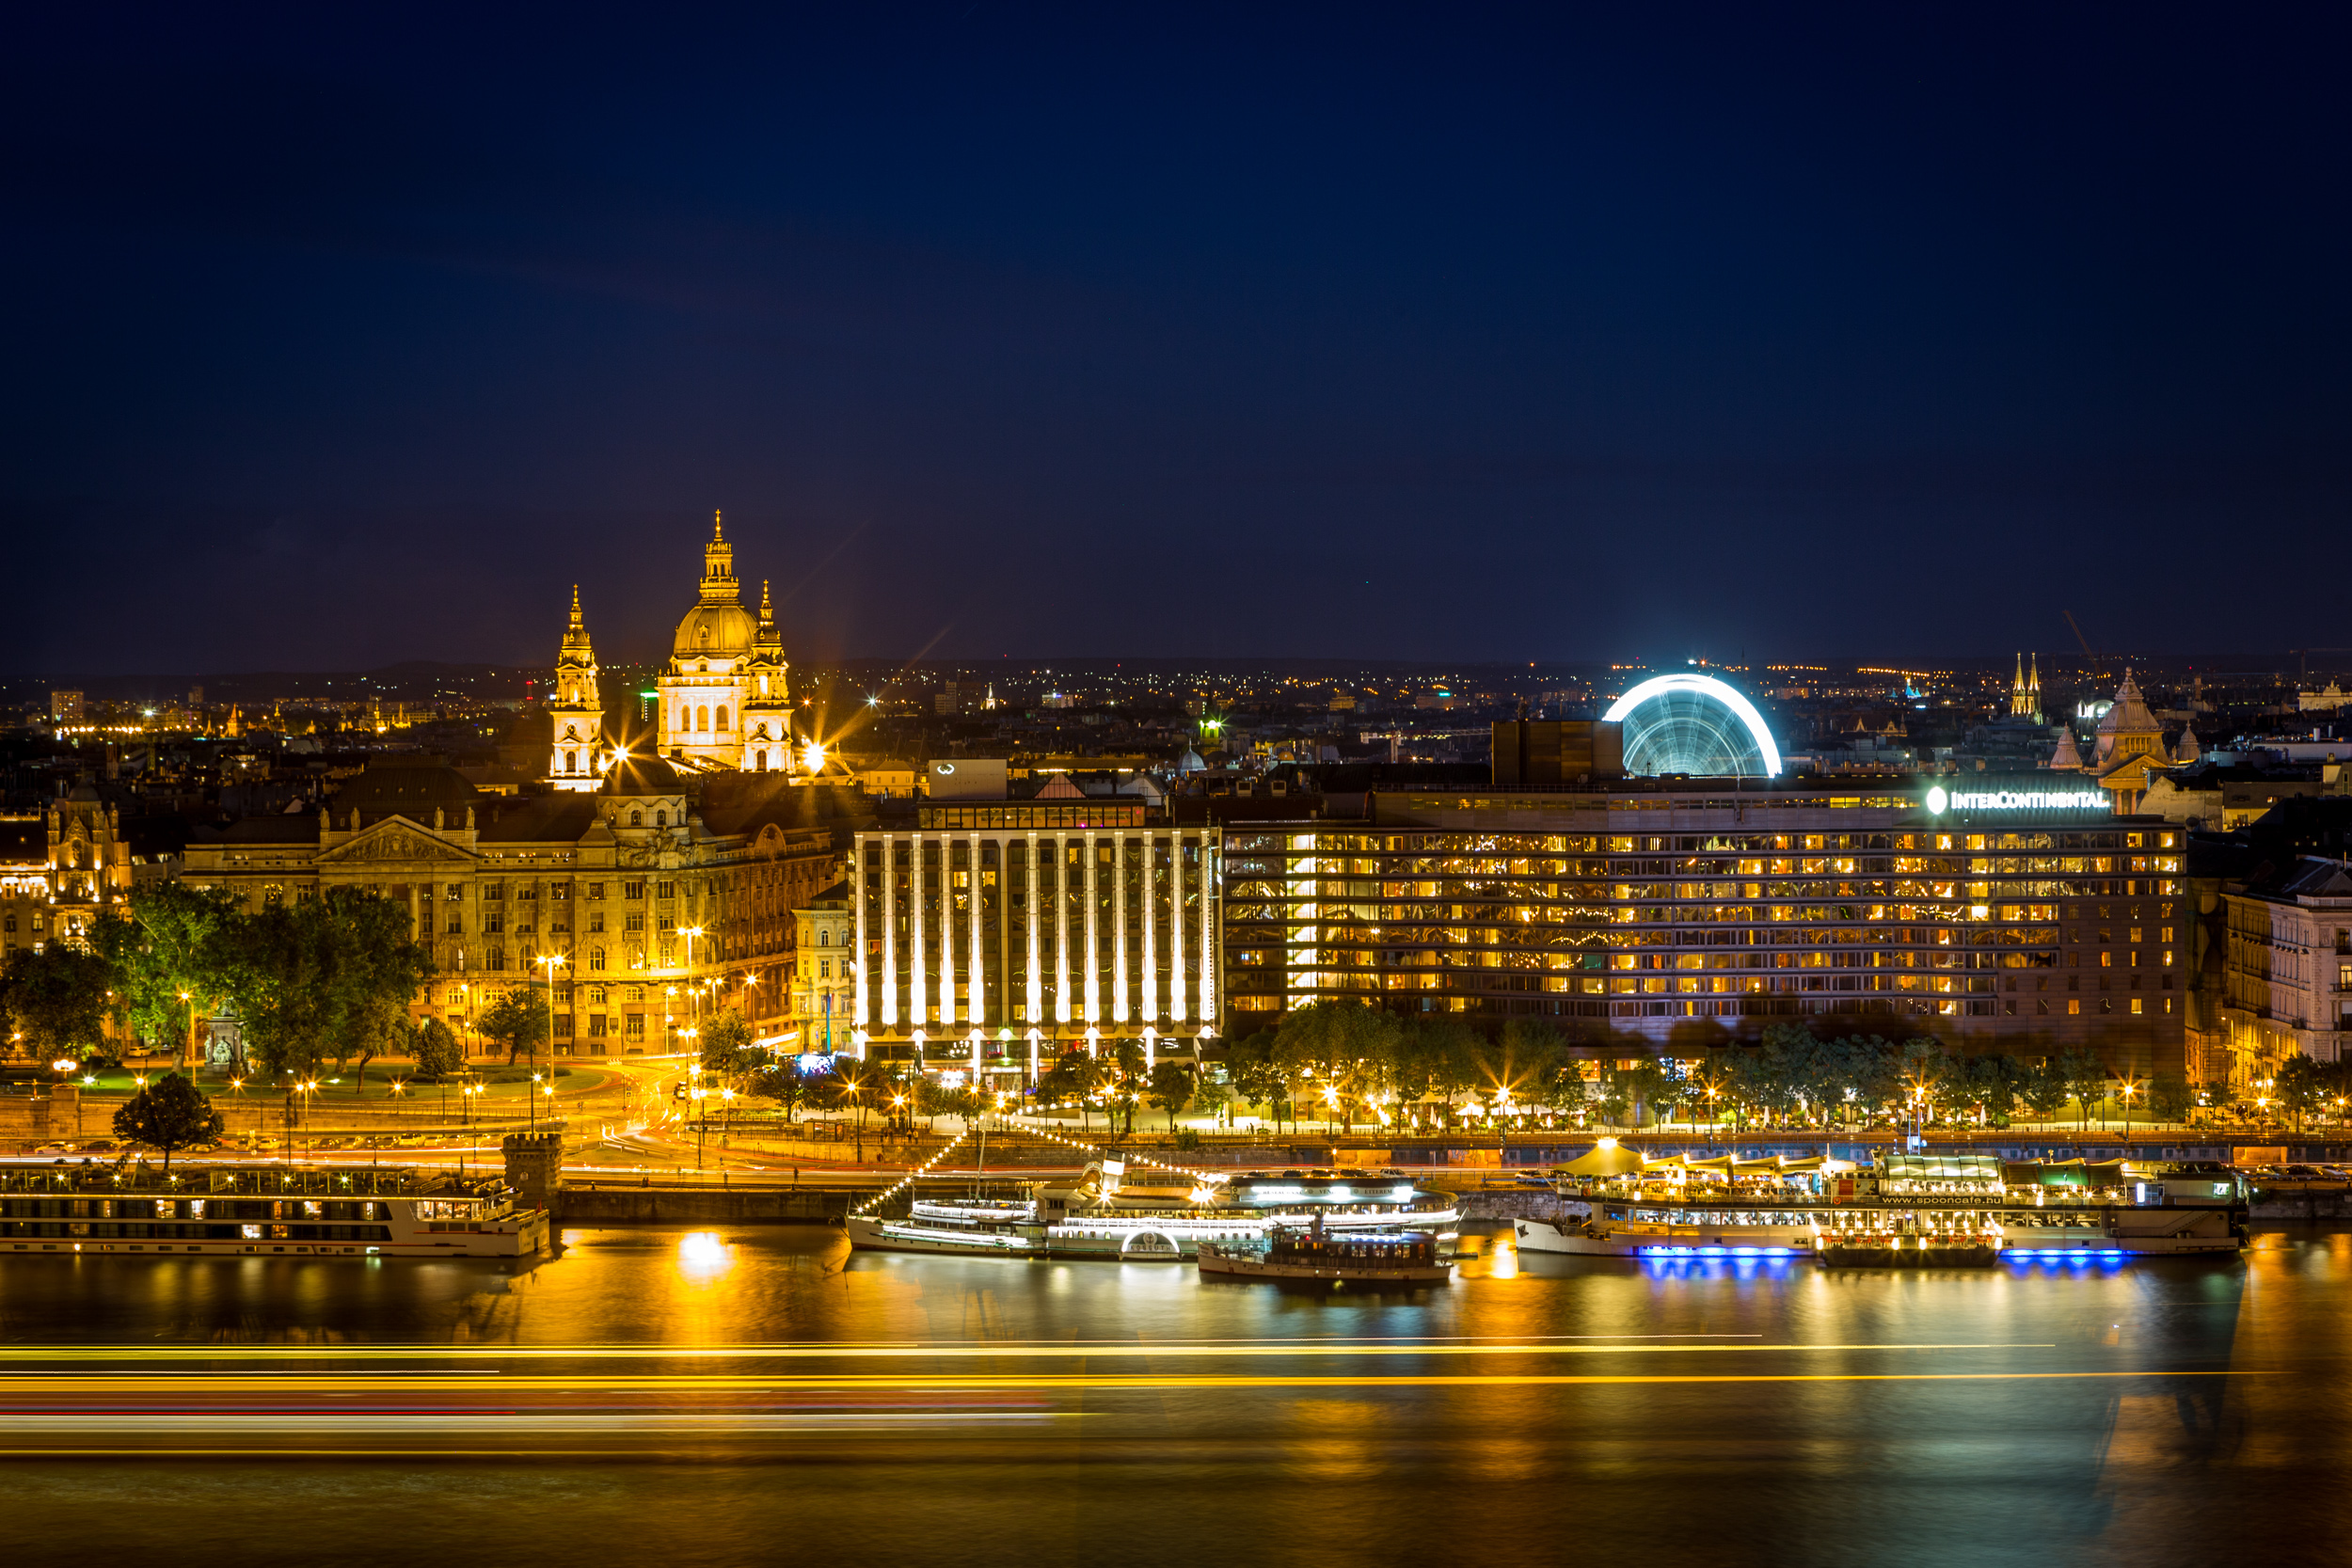 Danube River and Pest Night View from Buda Castle, ISO100, 70mm, f/13, 69sec